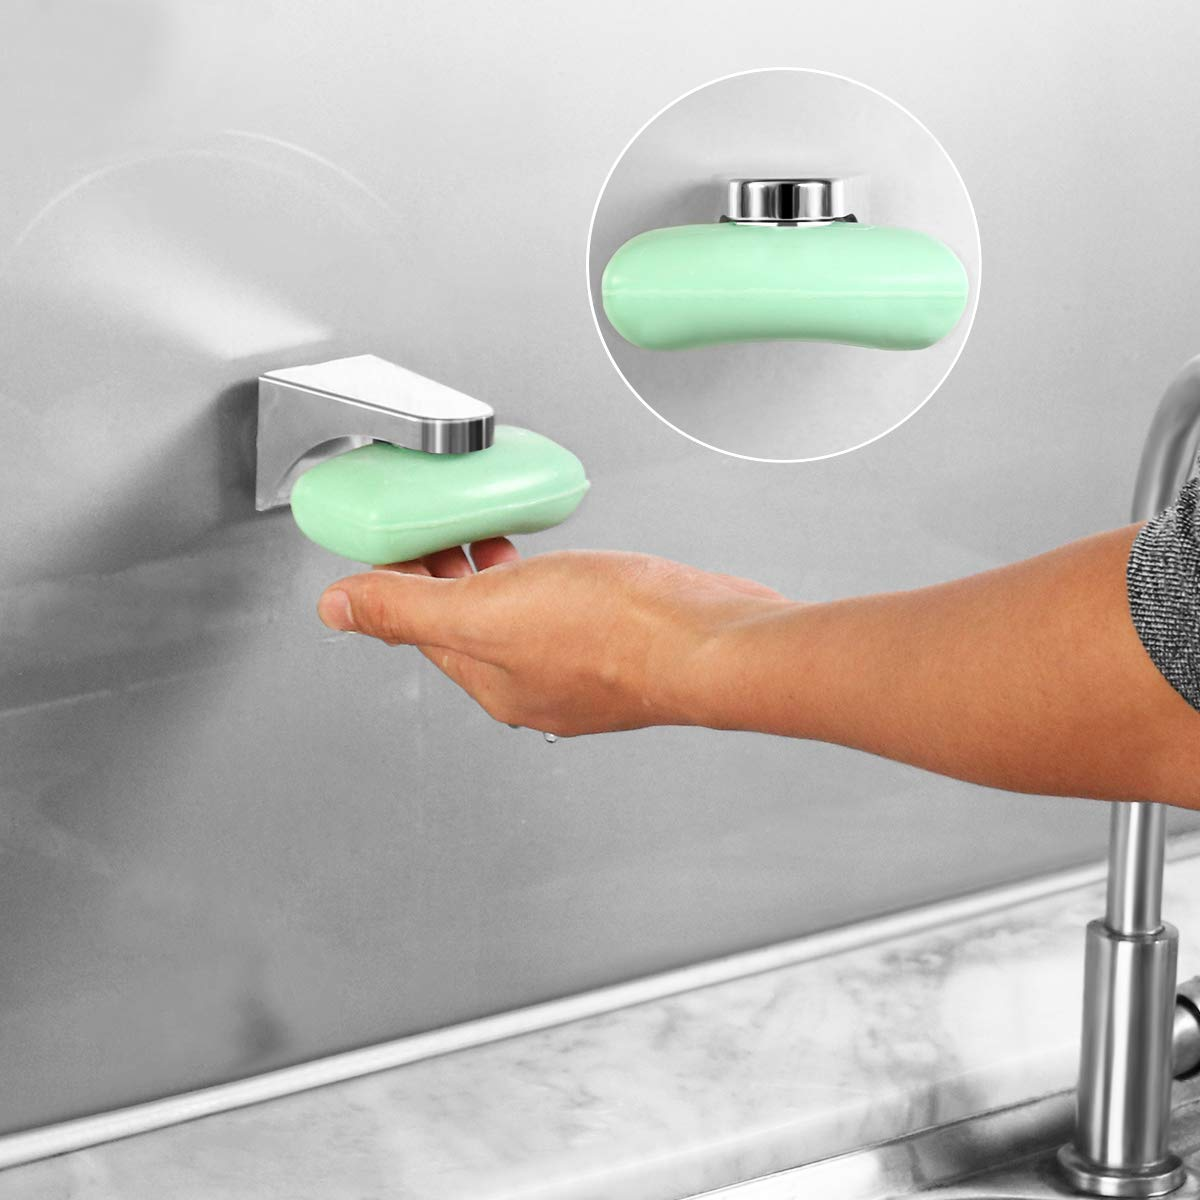 Home & Office - Magnetic Soap Holder